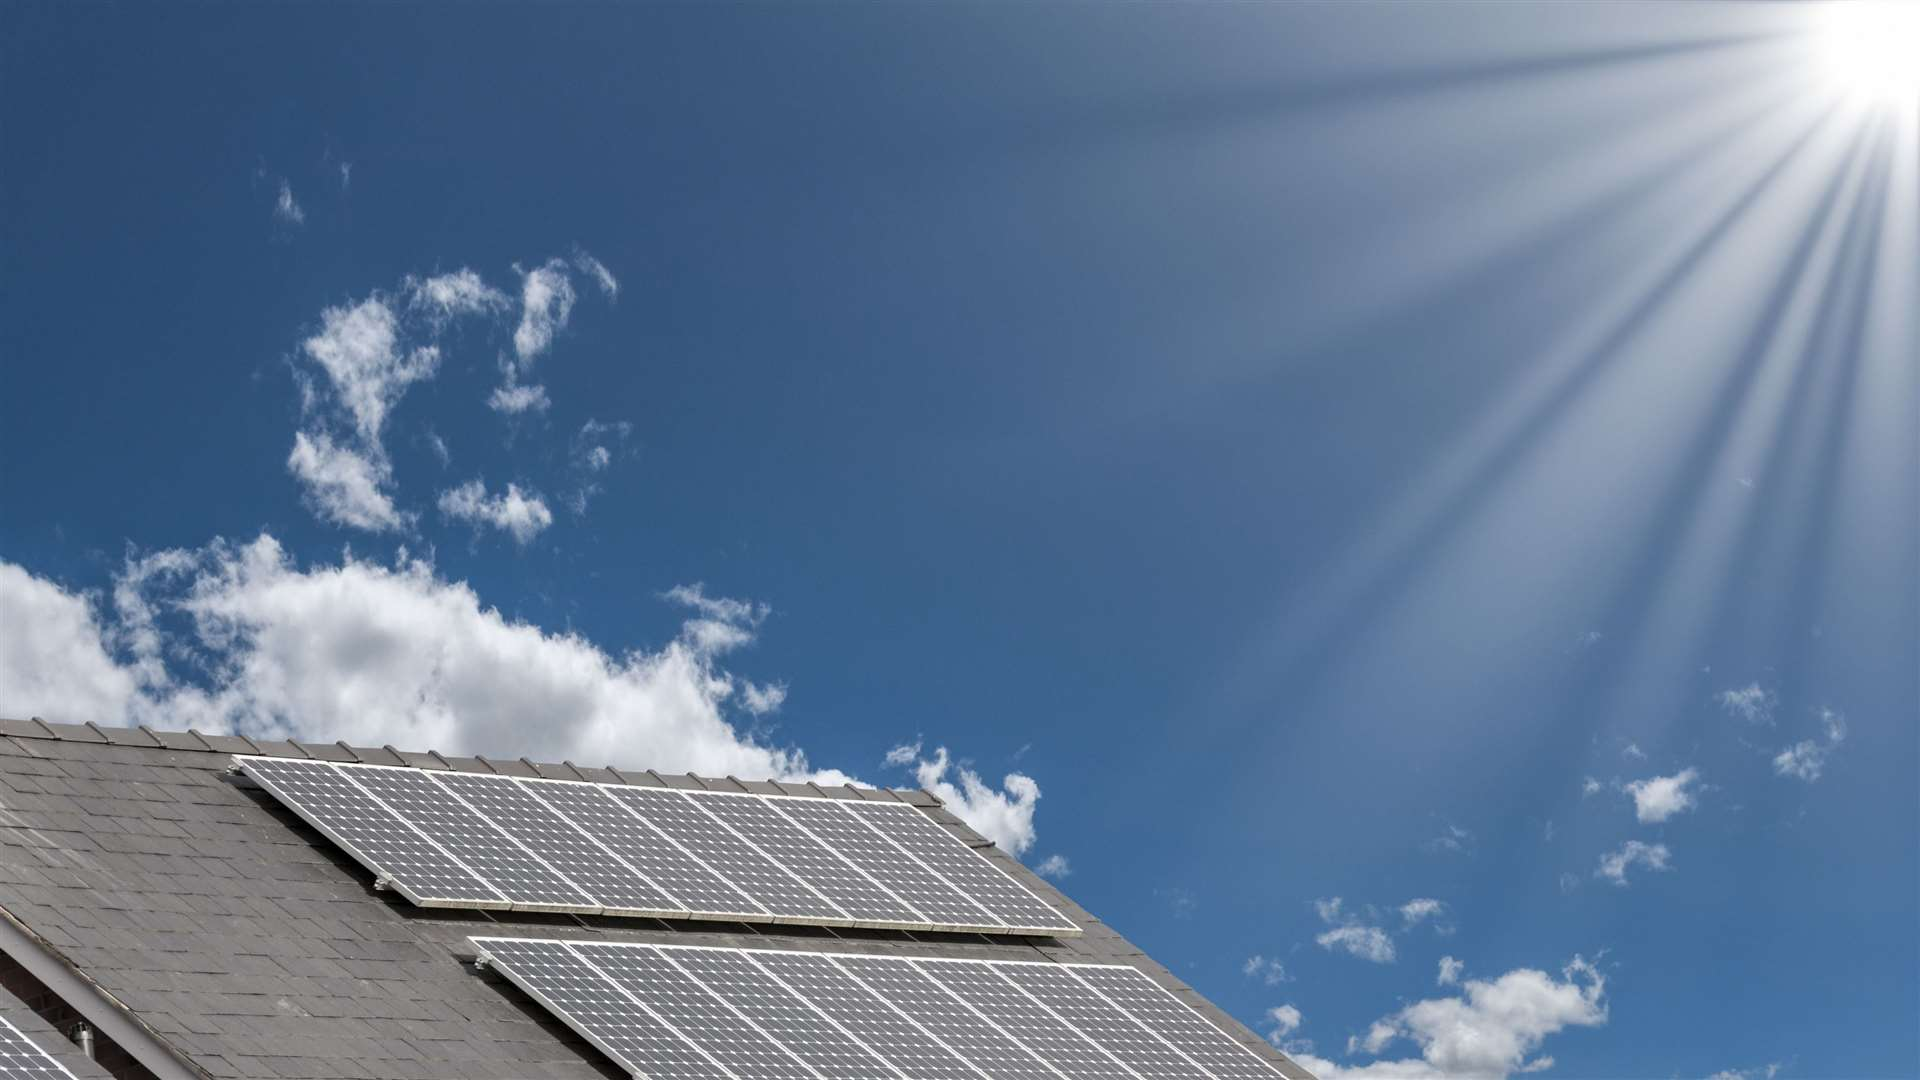 Solar panels can help reduce our demand on fossil fuels